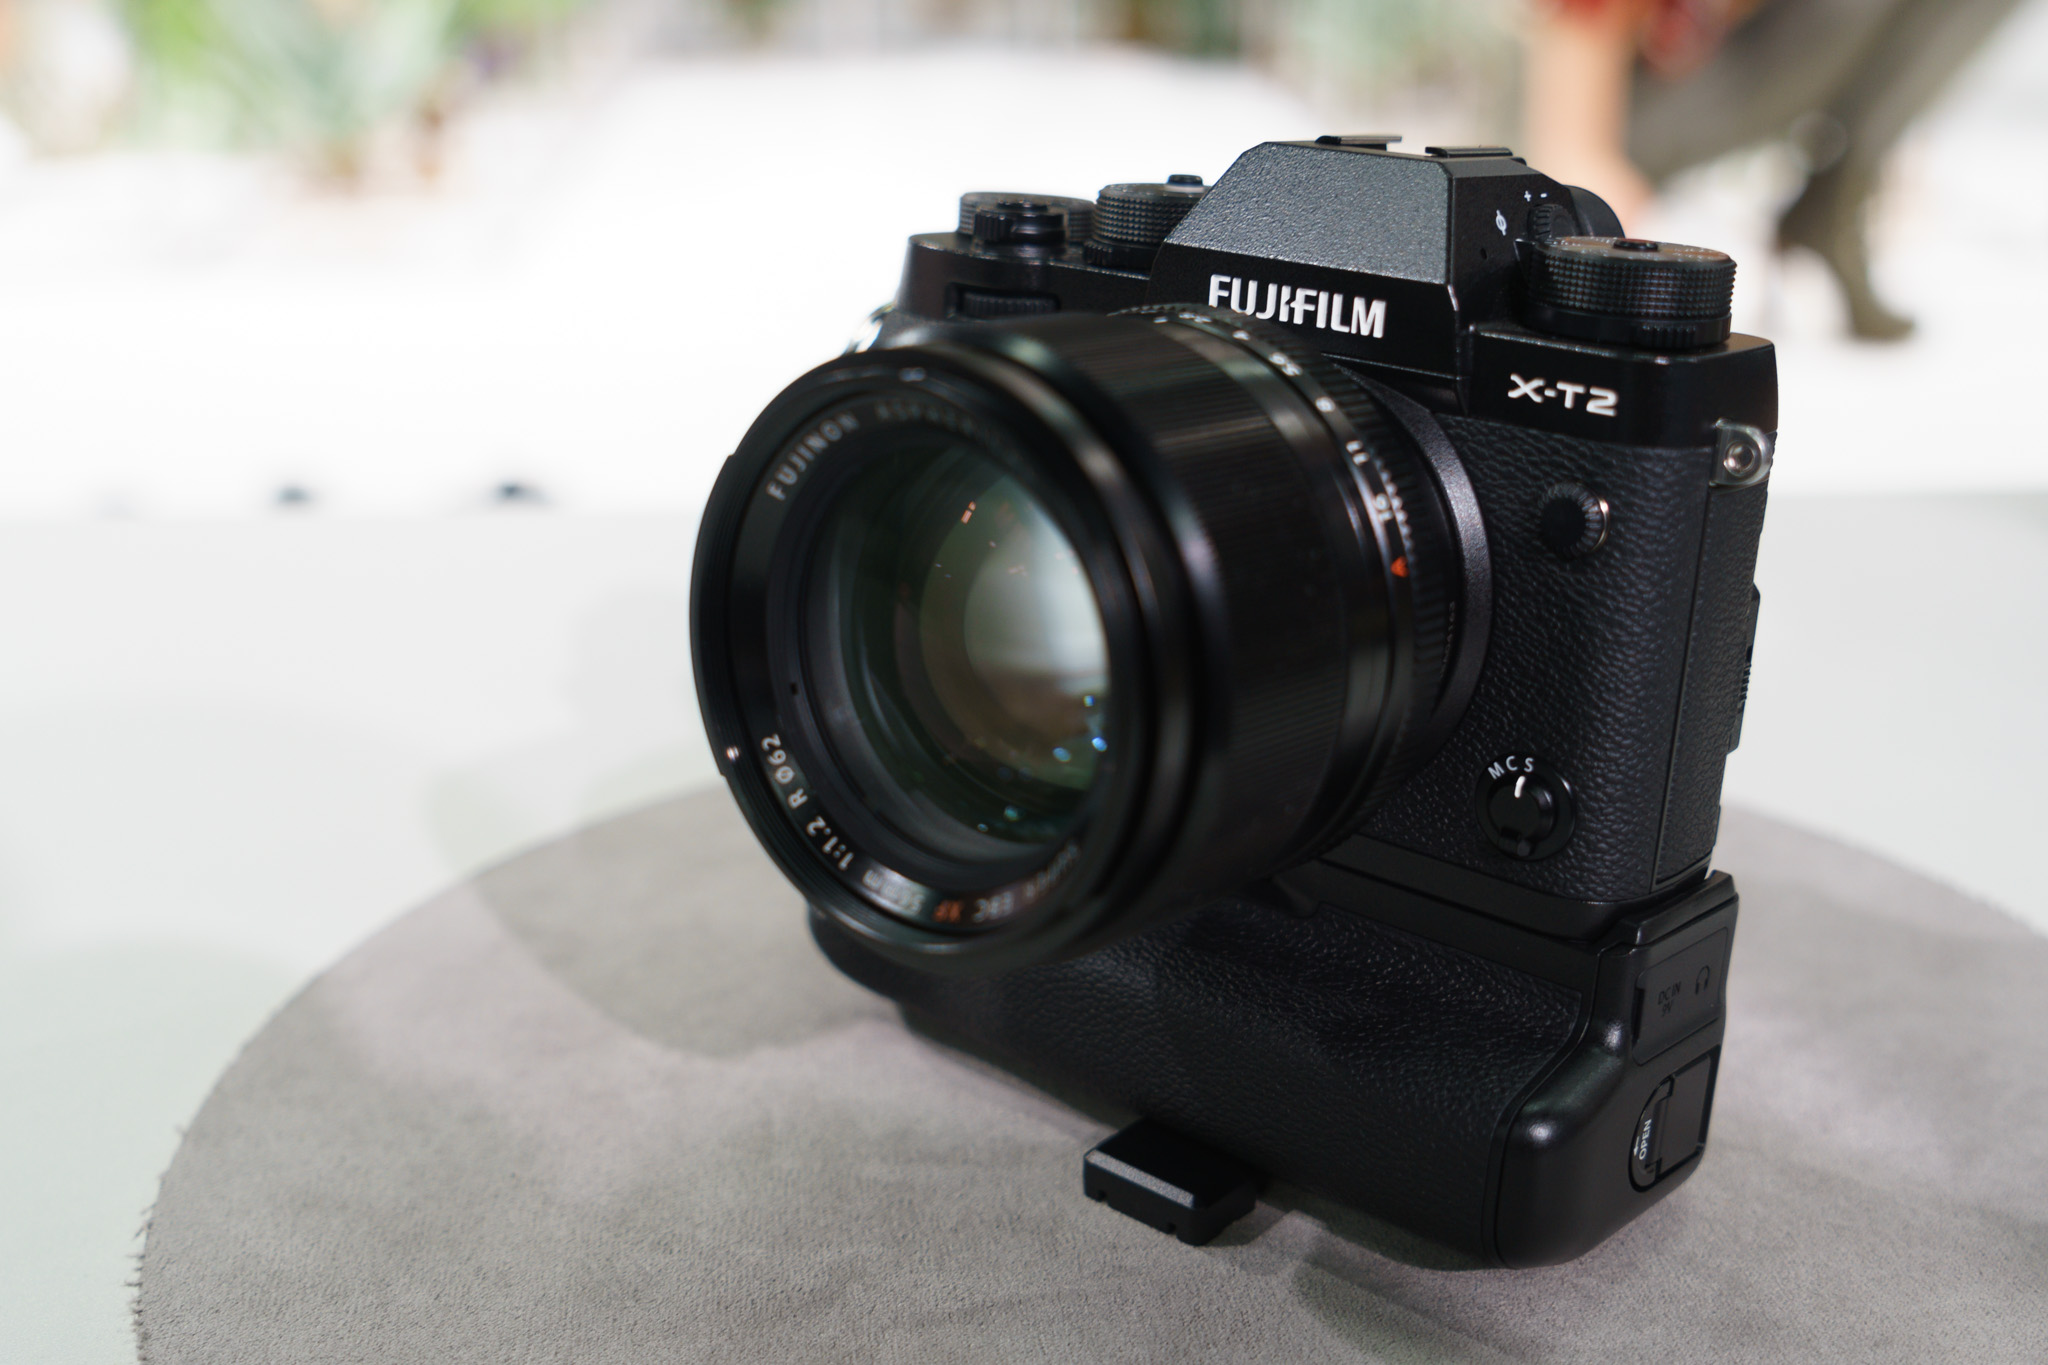 Hands On With The Fuji X T2 Analog Senses Fujifilm Xt2 Body Only T1 Was Already An Excellent And Subtle Improvements Like These Will Make Using Even Better